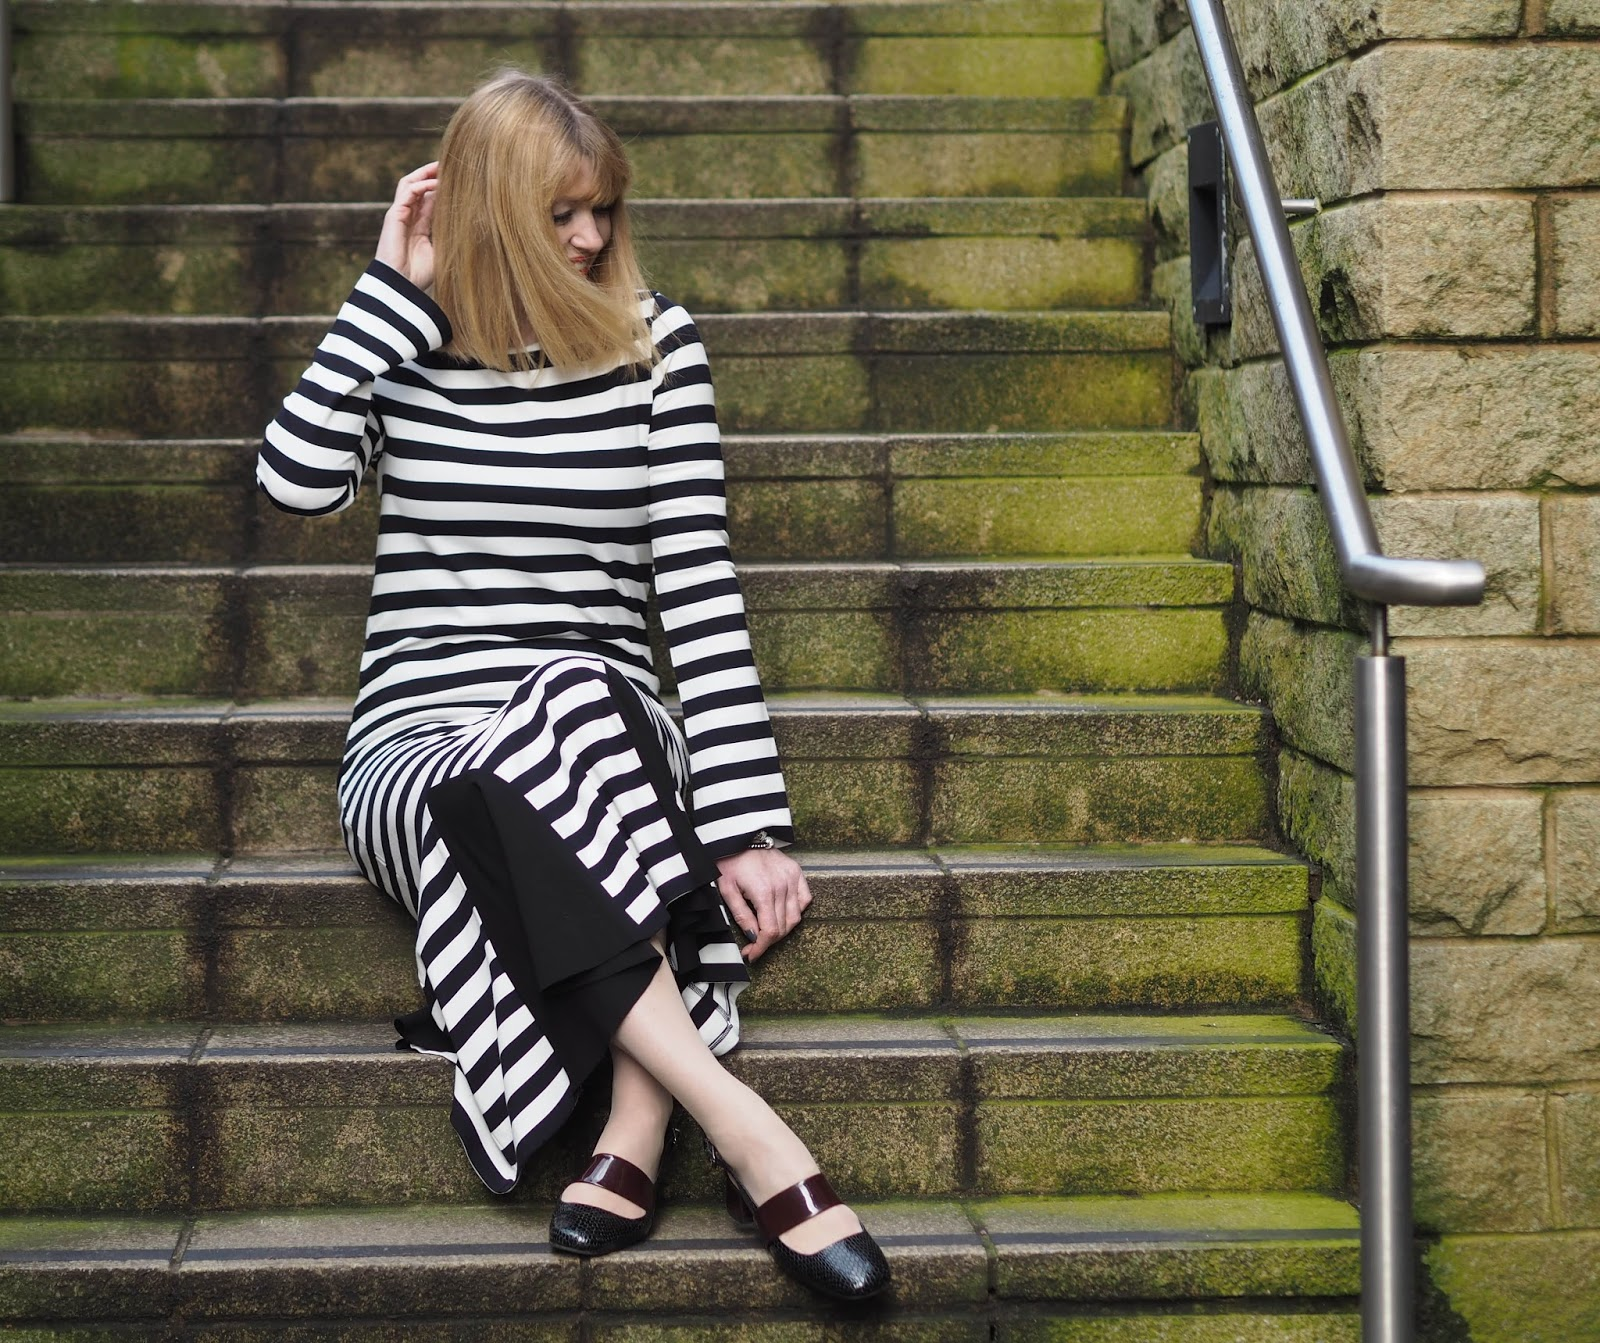 Finery Cygnet black and white striped godet detail dress, over 40 Collective